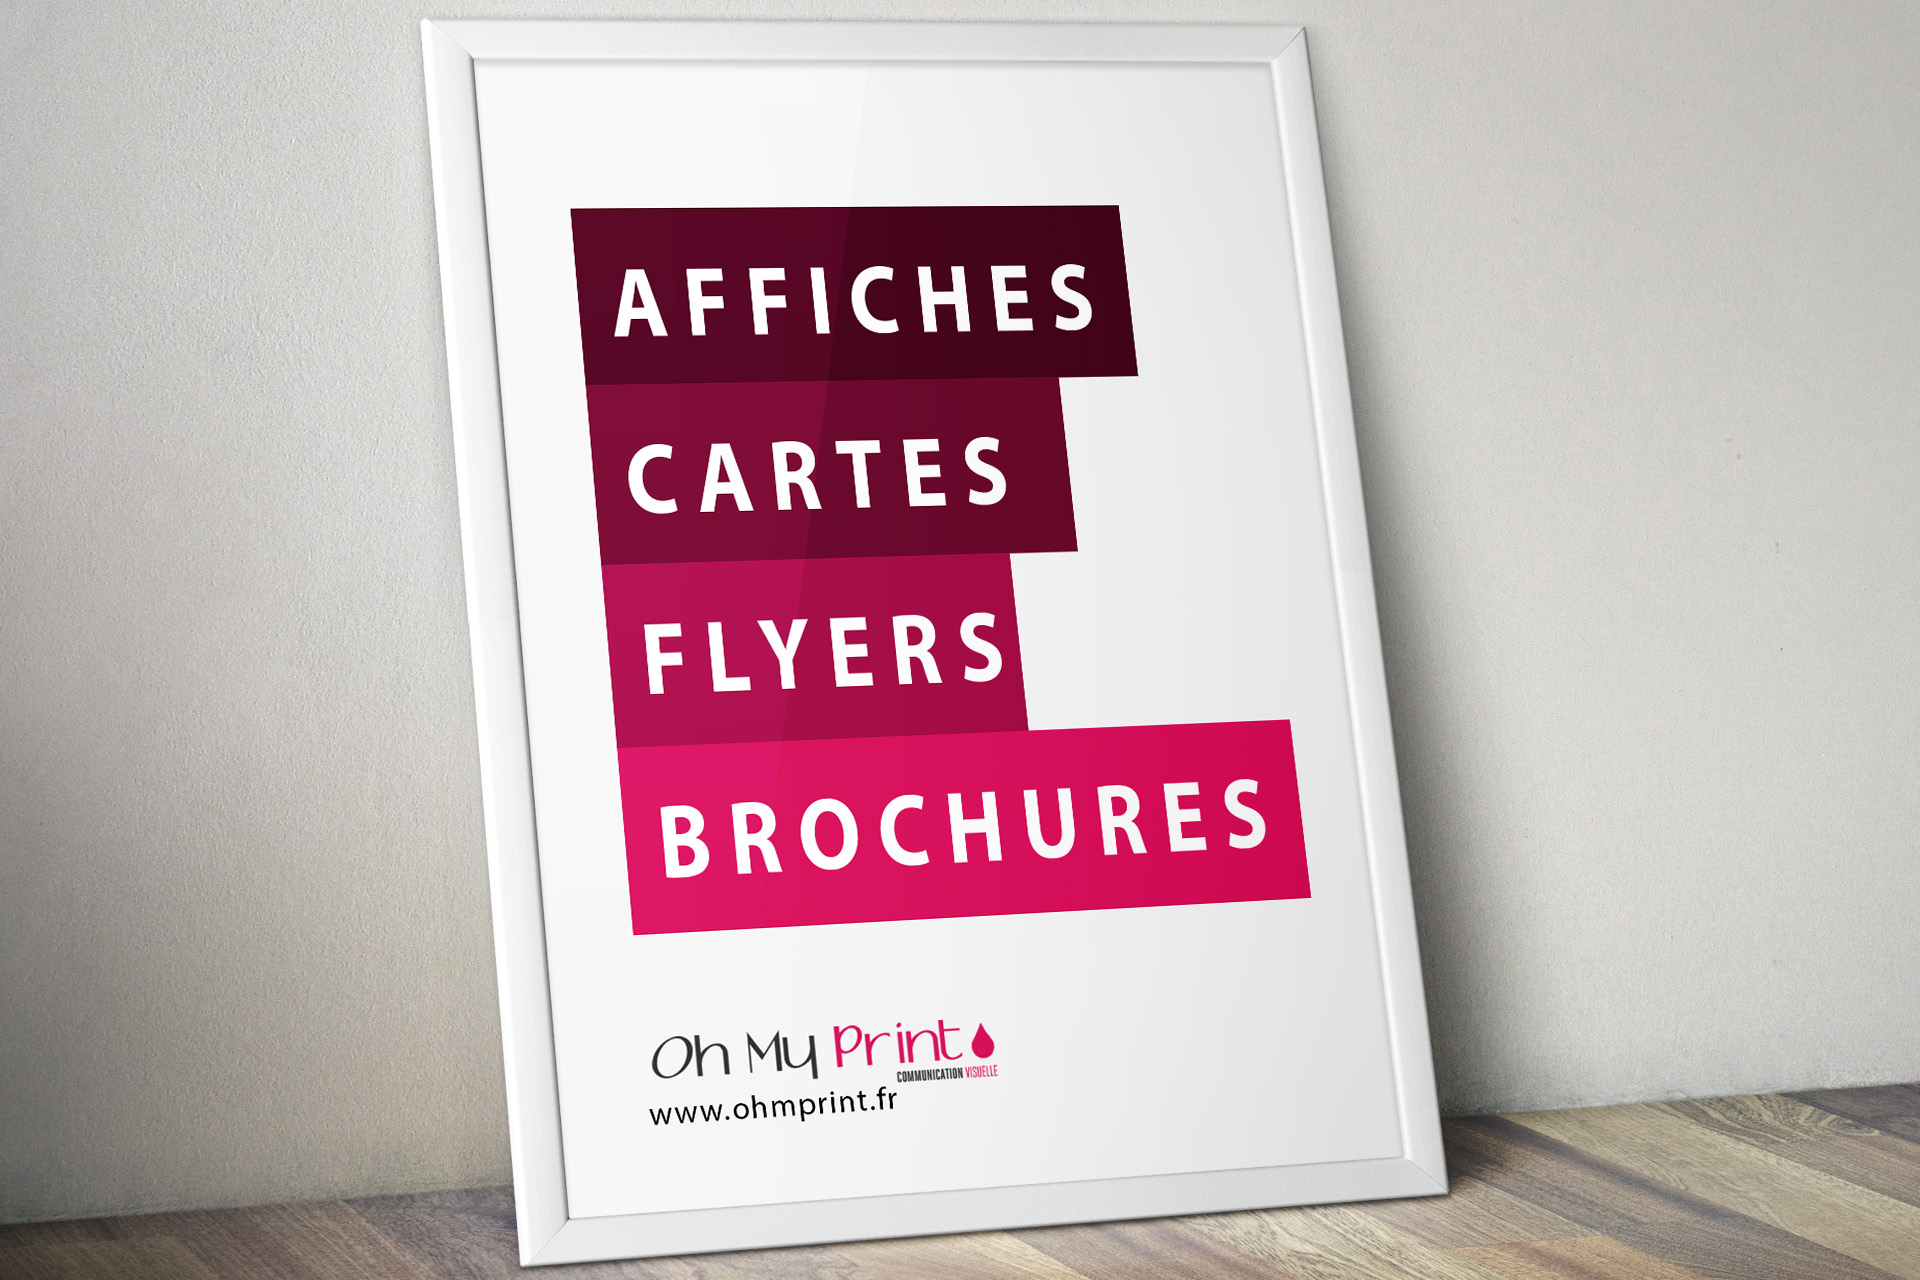 Affiches-ohmyprint-2